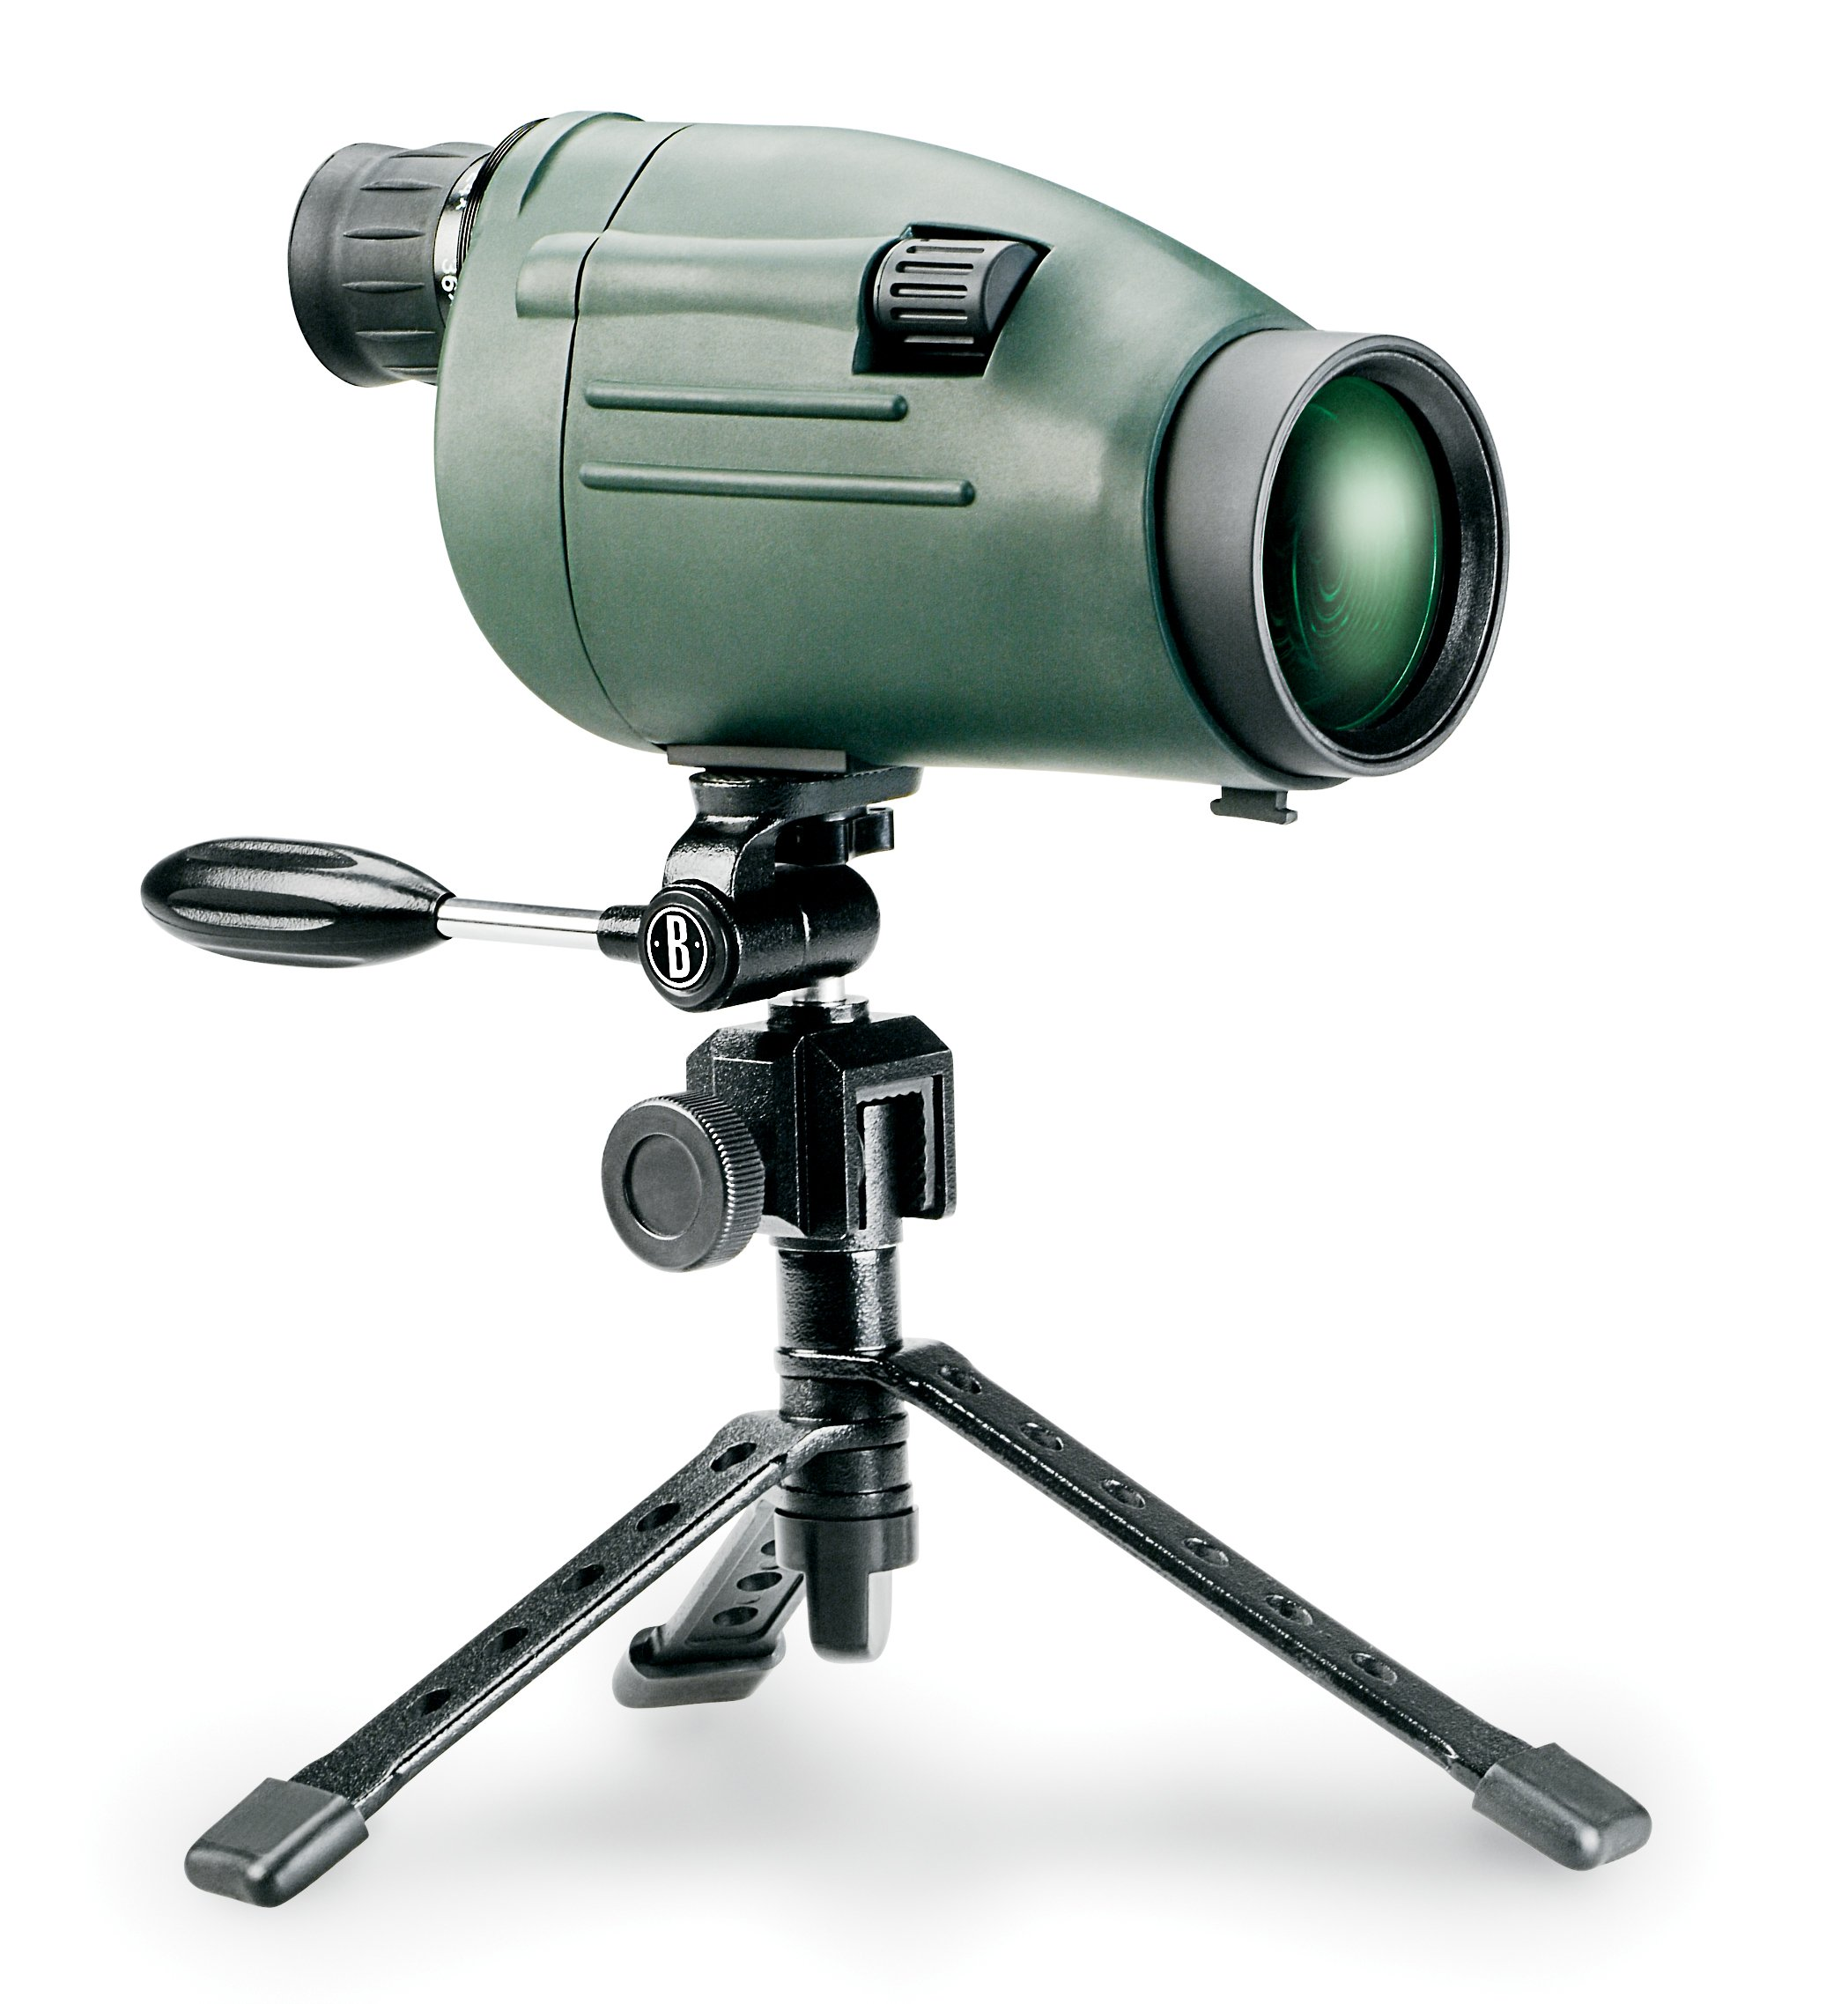 Bushnell 12-36x50mm Waterproof Ultra Compact Spotting Scope by Bushnell